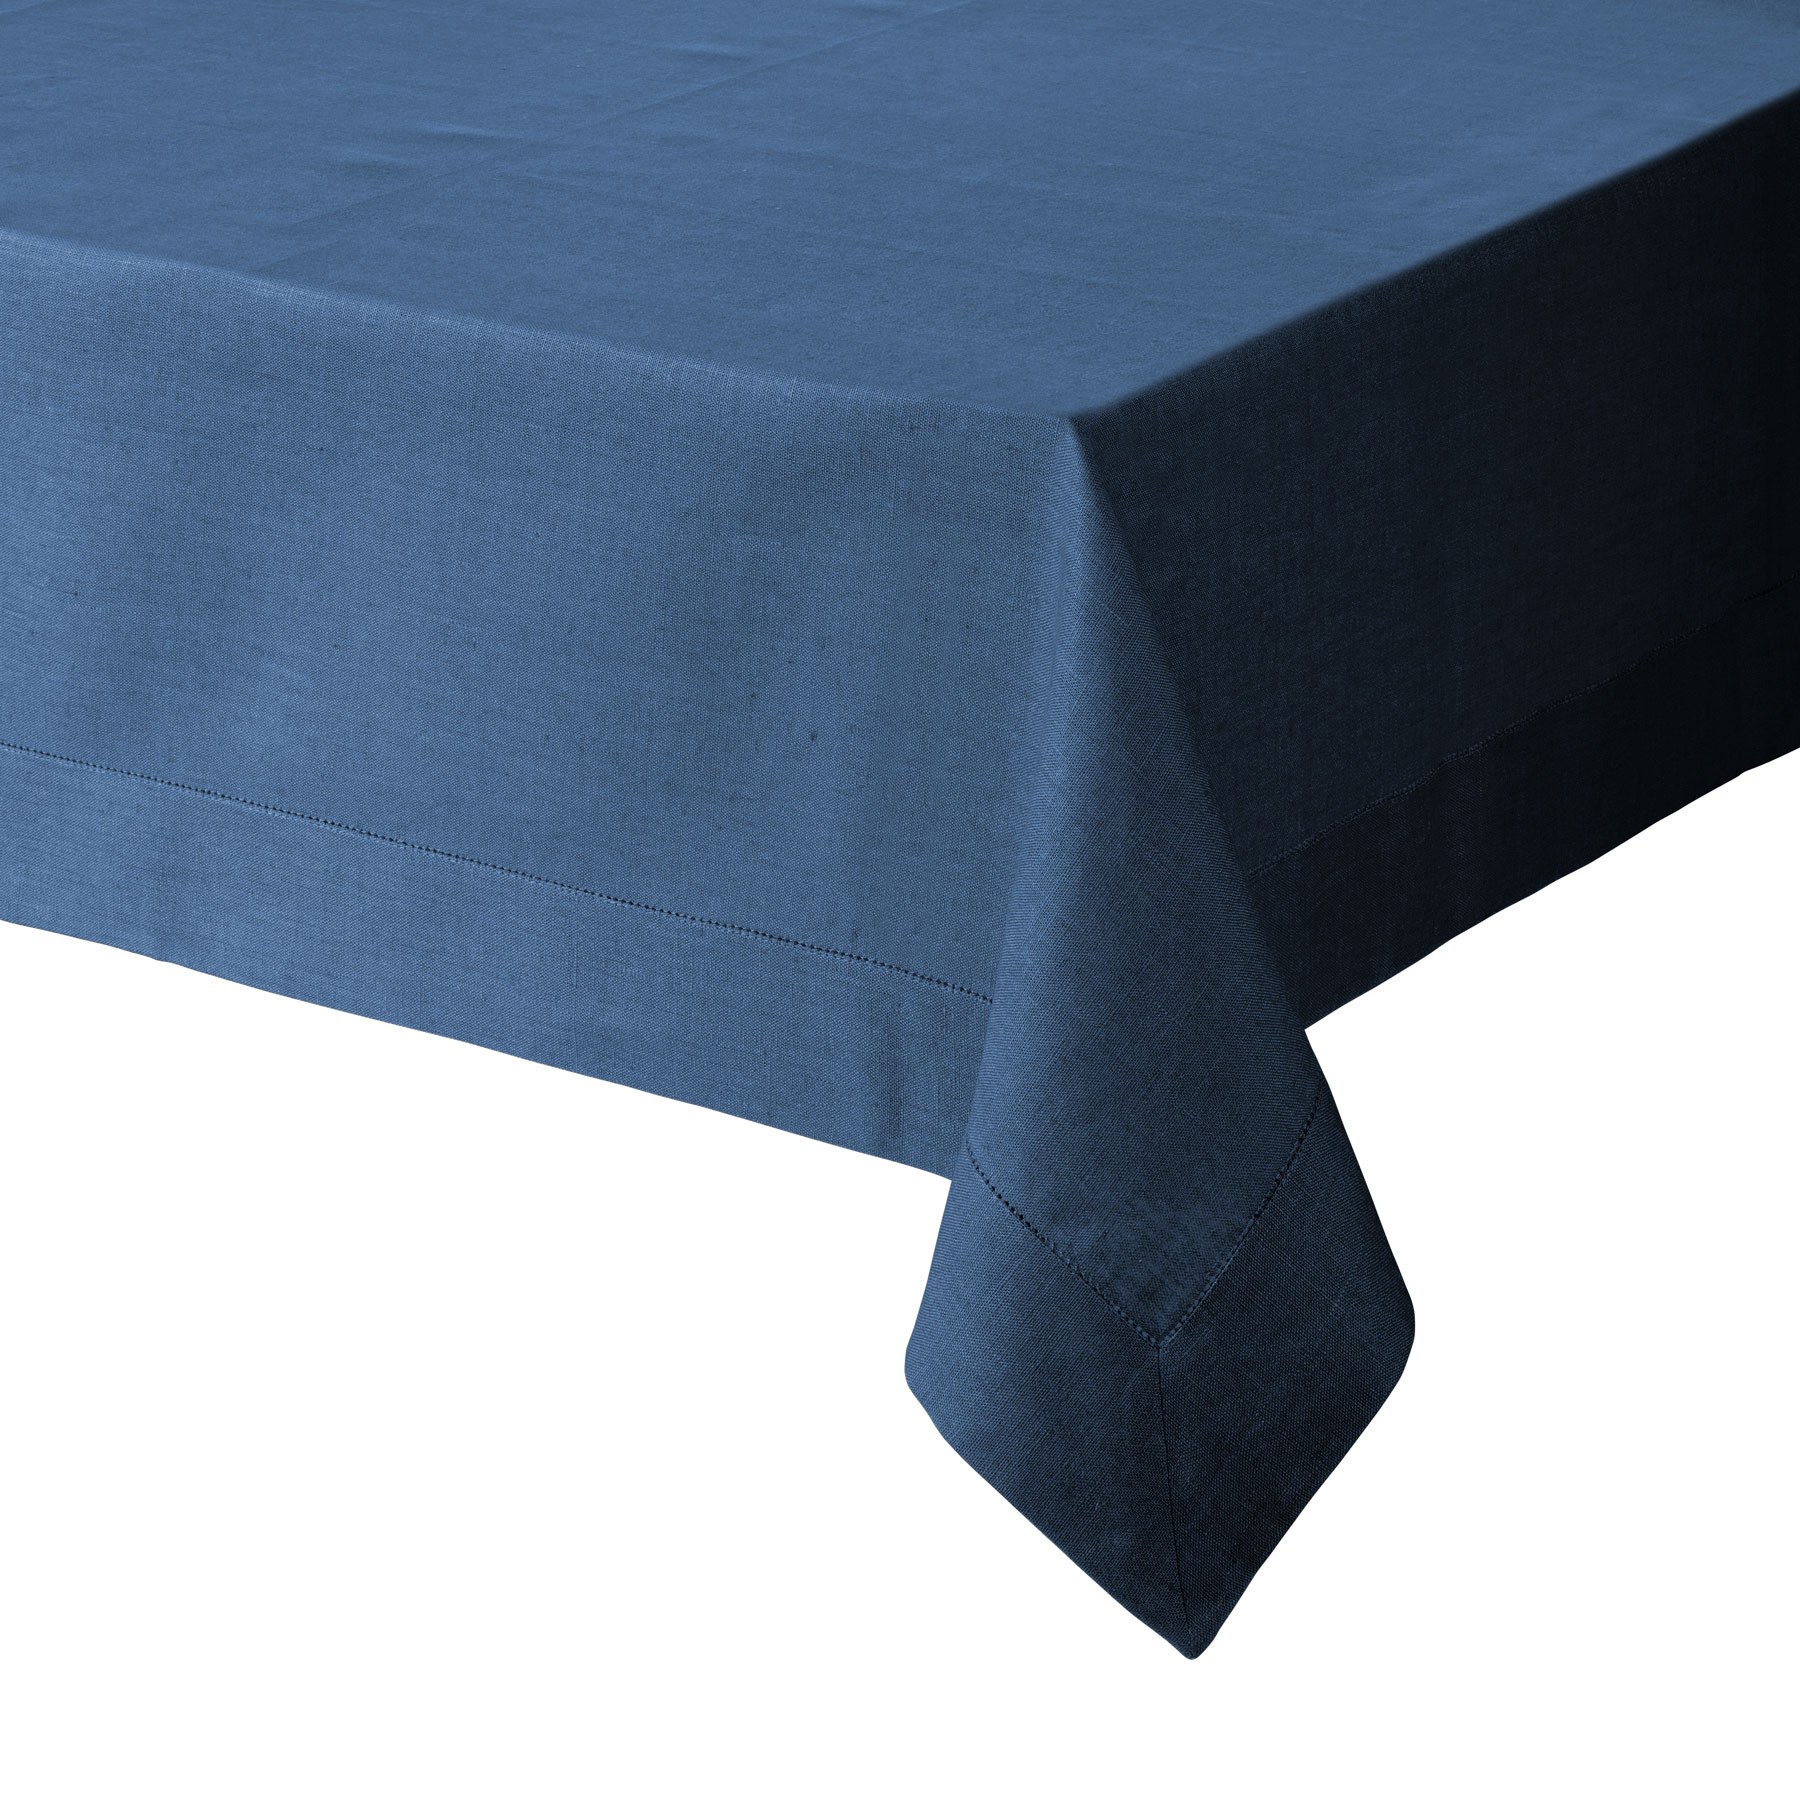 TABLECLOTH <br />denim blue